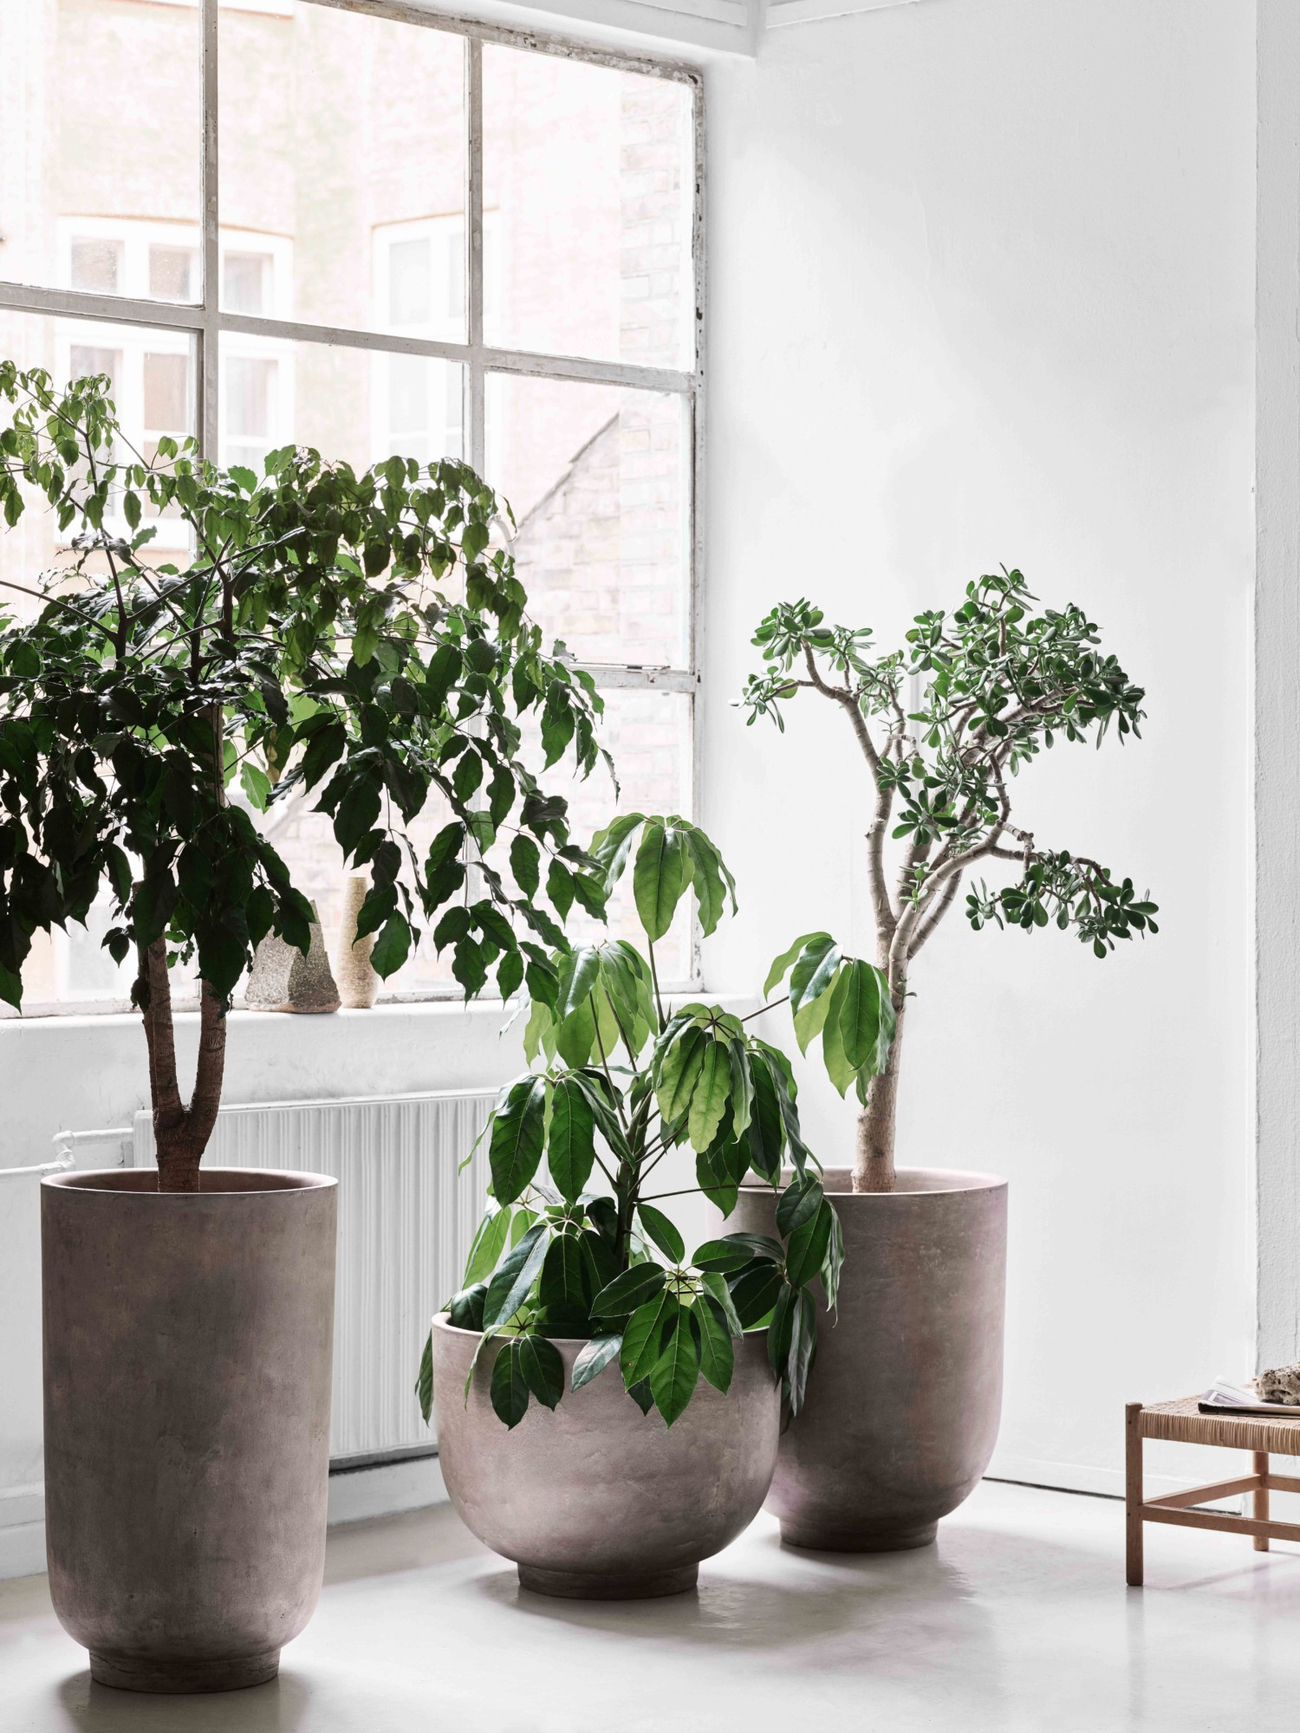 https://www.fundesign.nl/media/catalog/product/a/t/atd_lifestyle_2020_planter_sc43_sc44_sc45_web-1500x2000.jpg